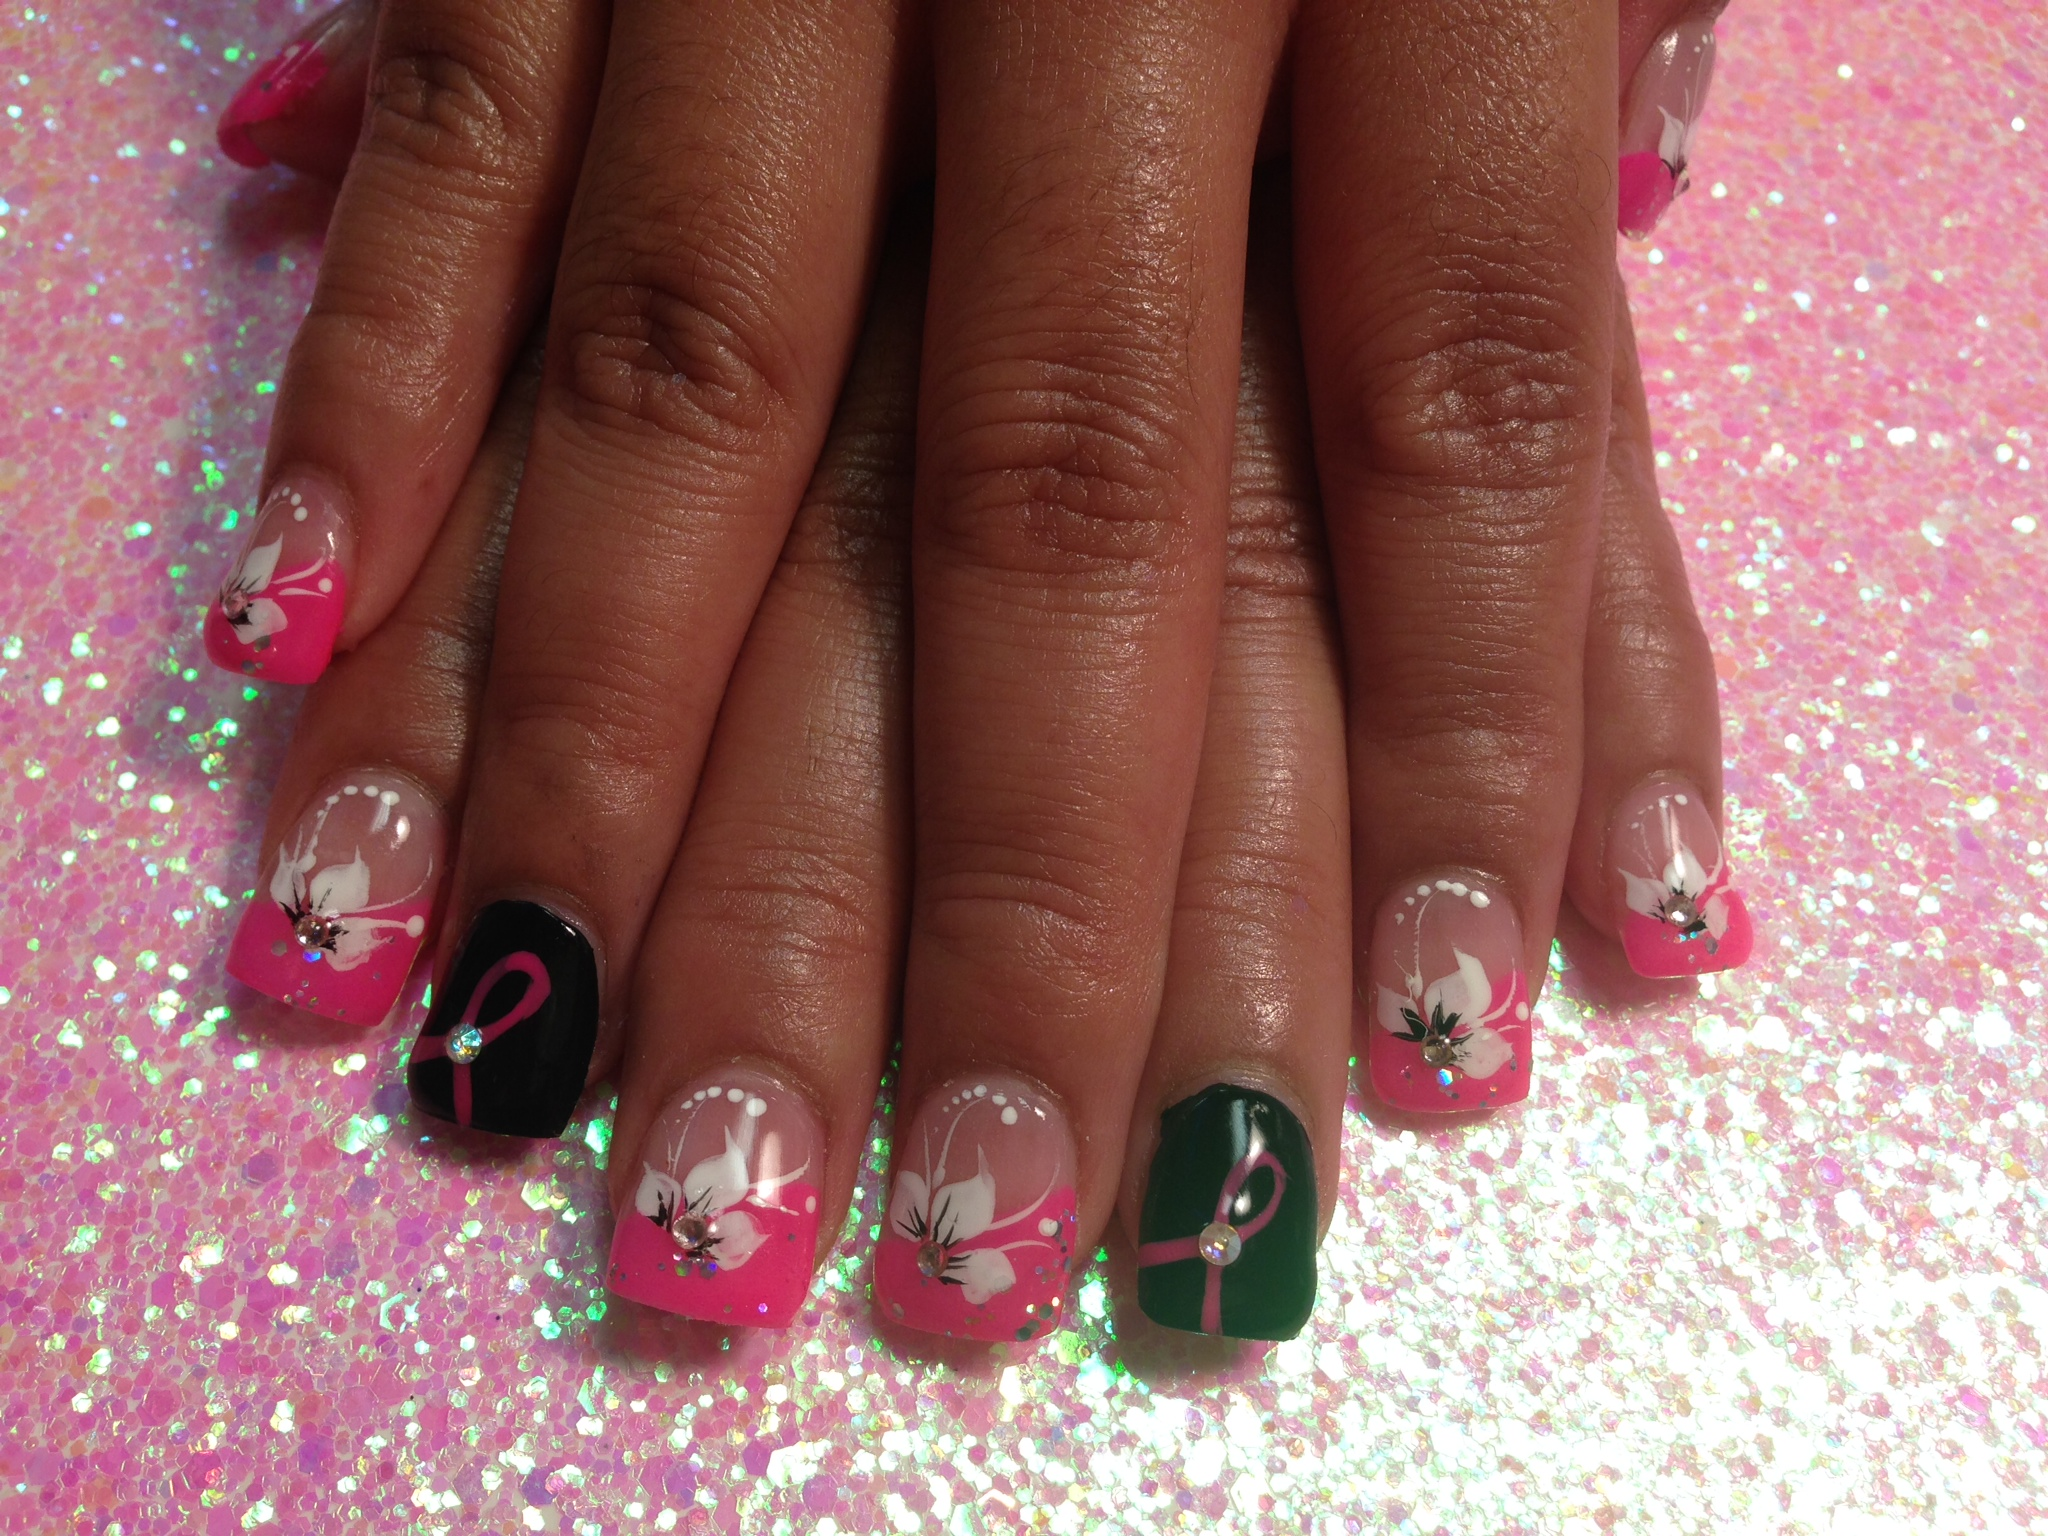 Save the tatas lily nail art designs by top nails clarksville tn save the tatas lily nail art designs by top nails clarksville tn izmirmasajfo